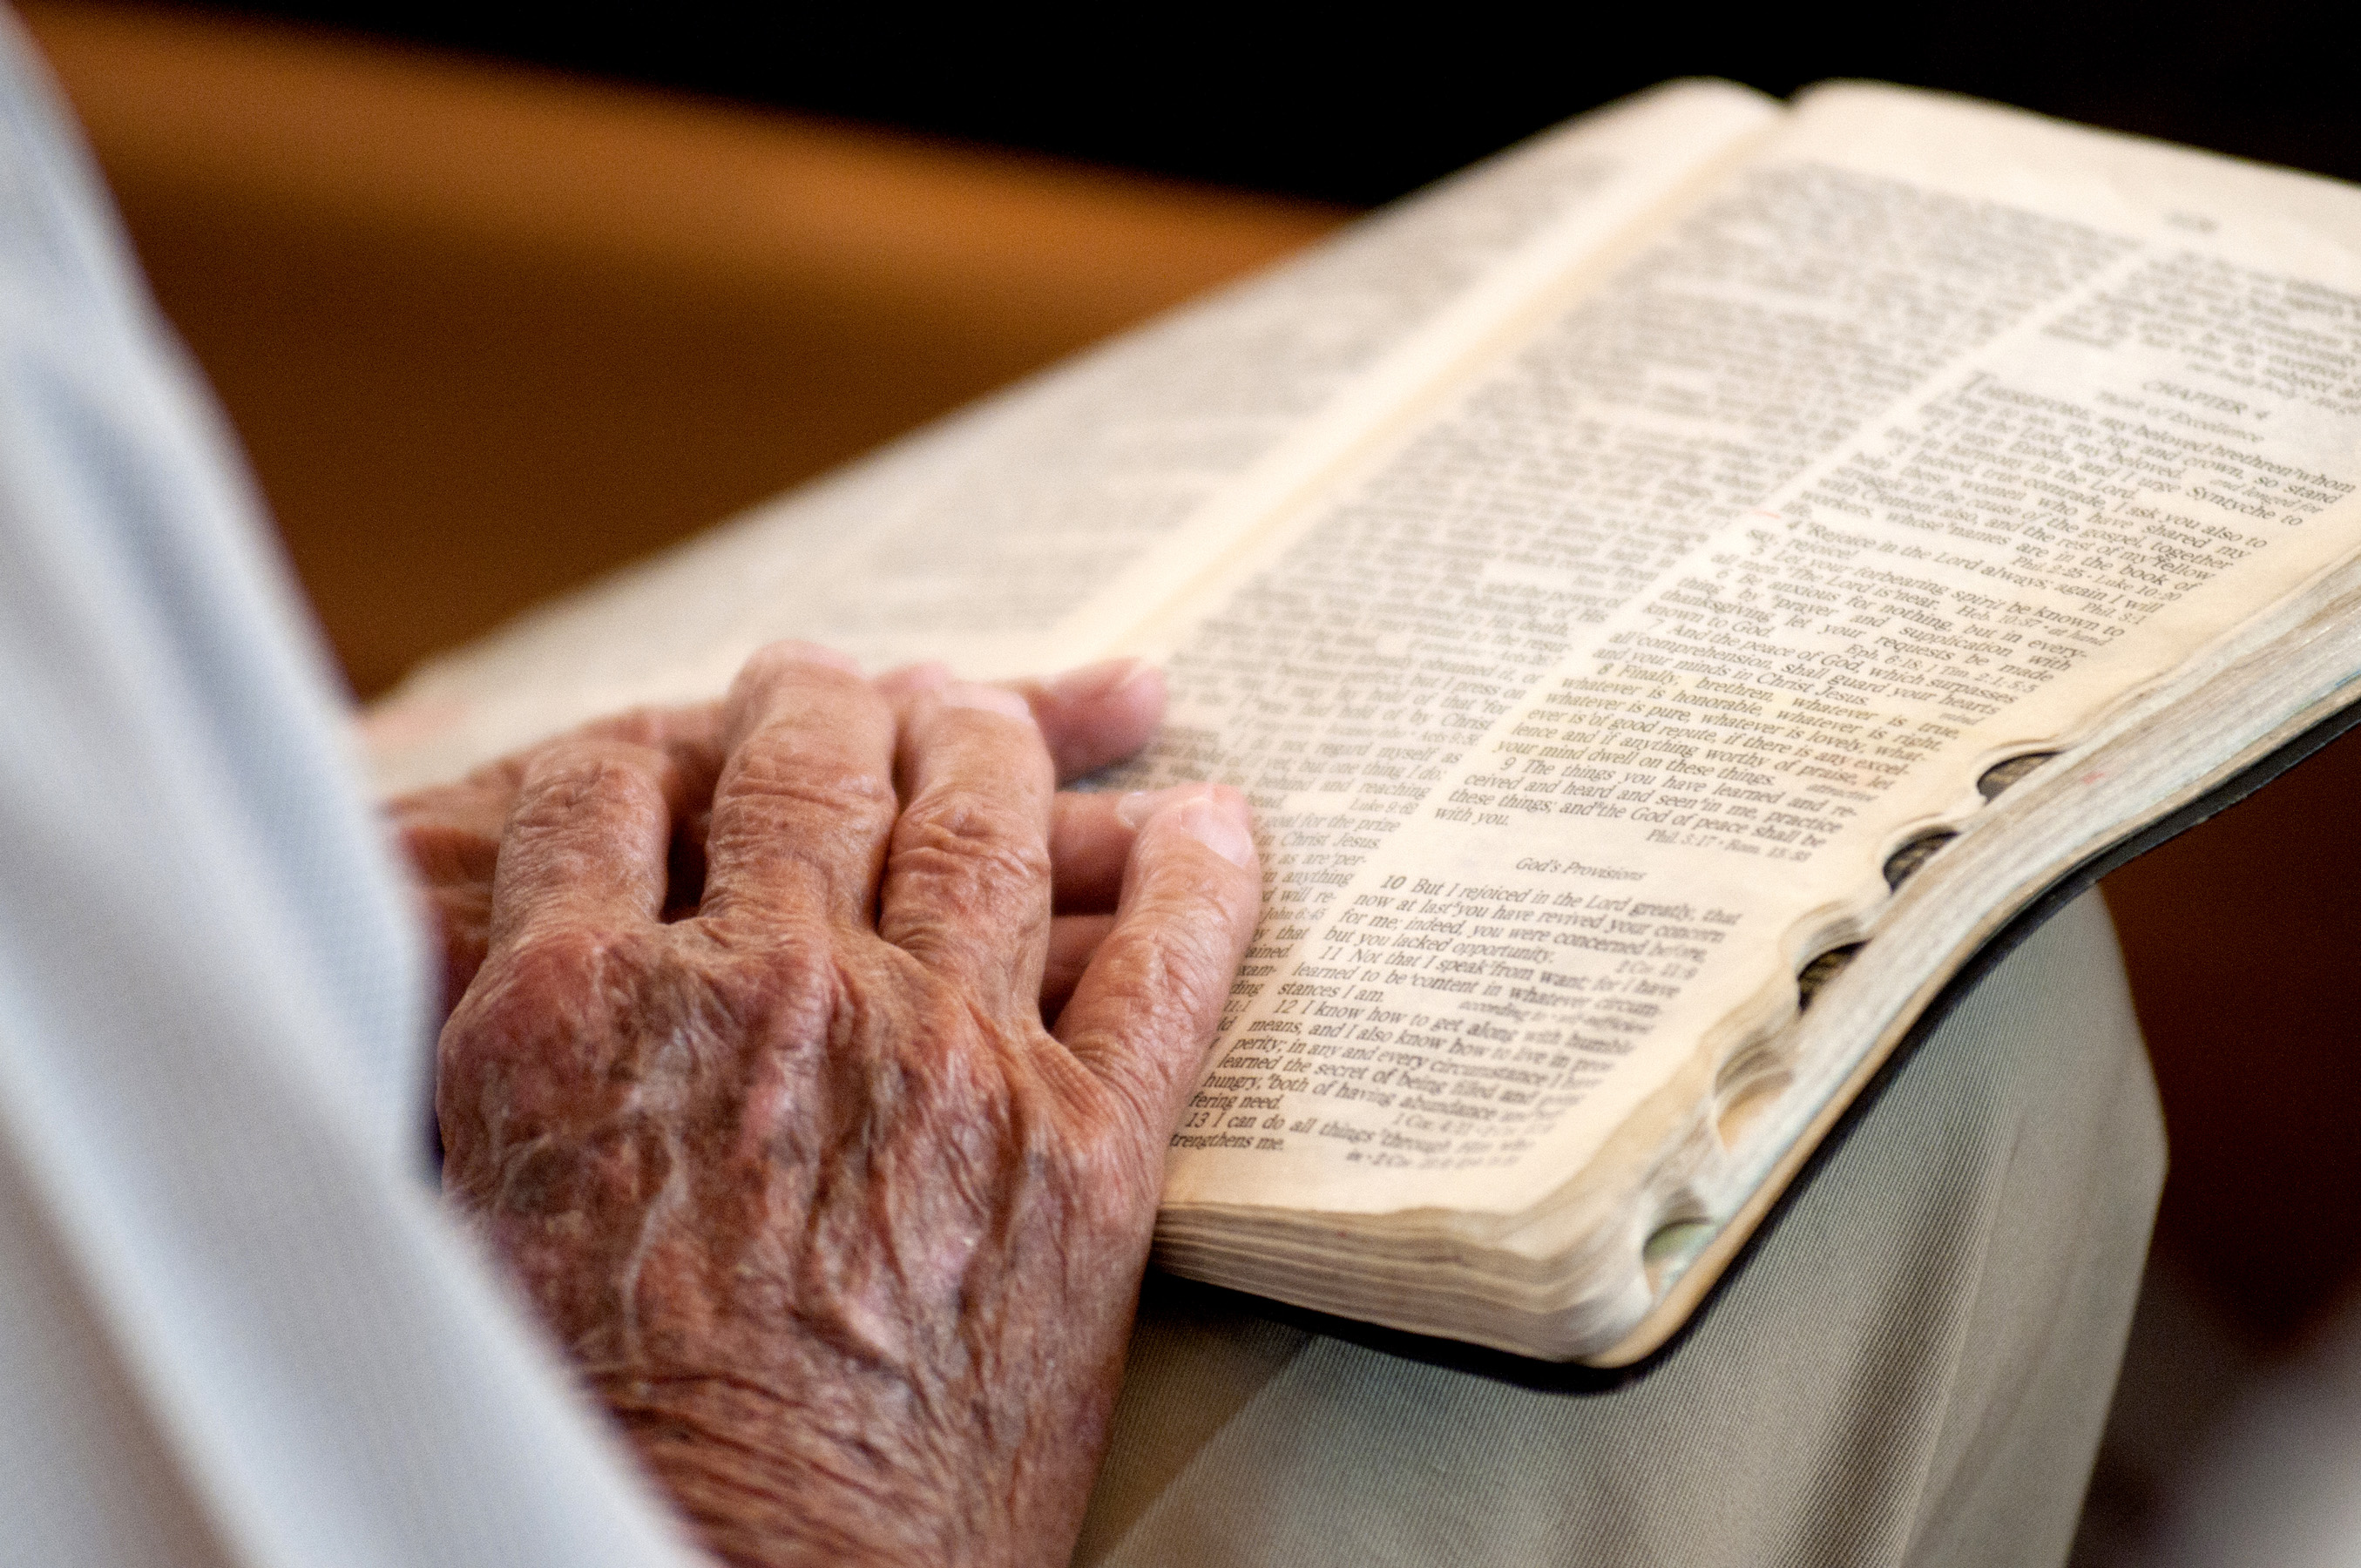 Image result for hands on a bible images